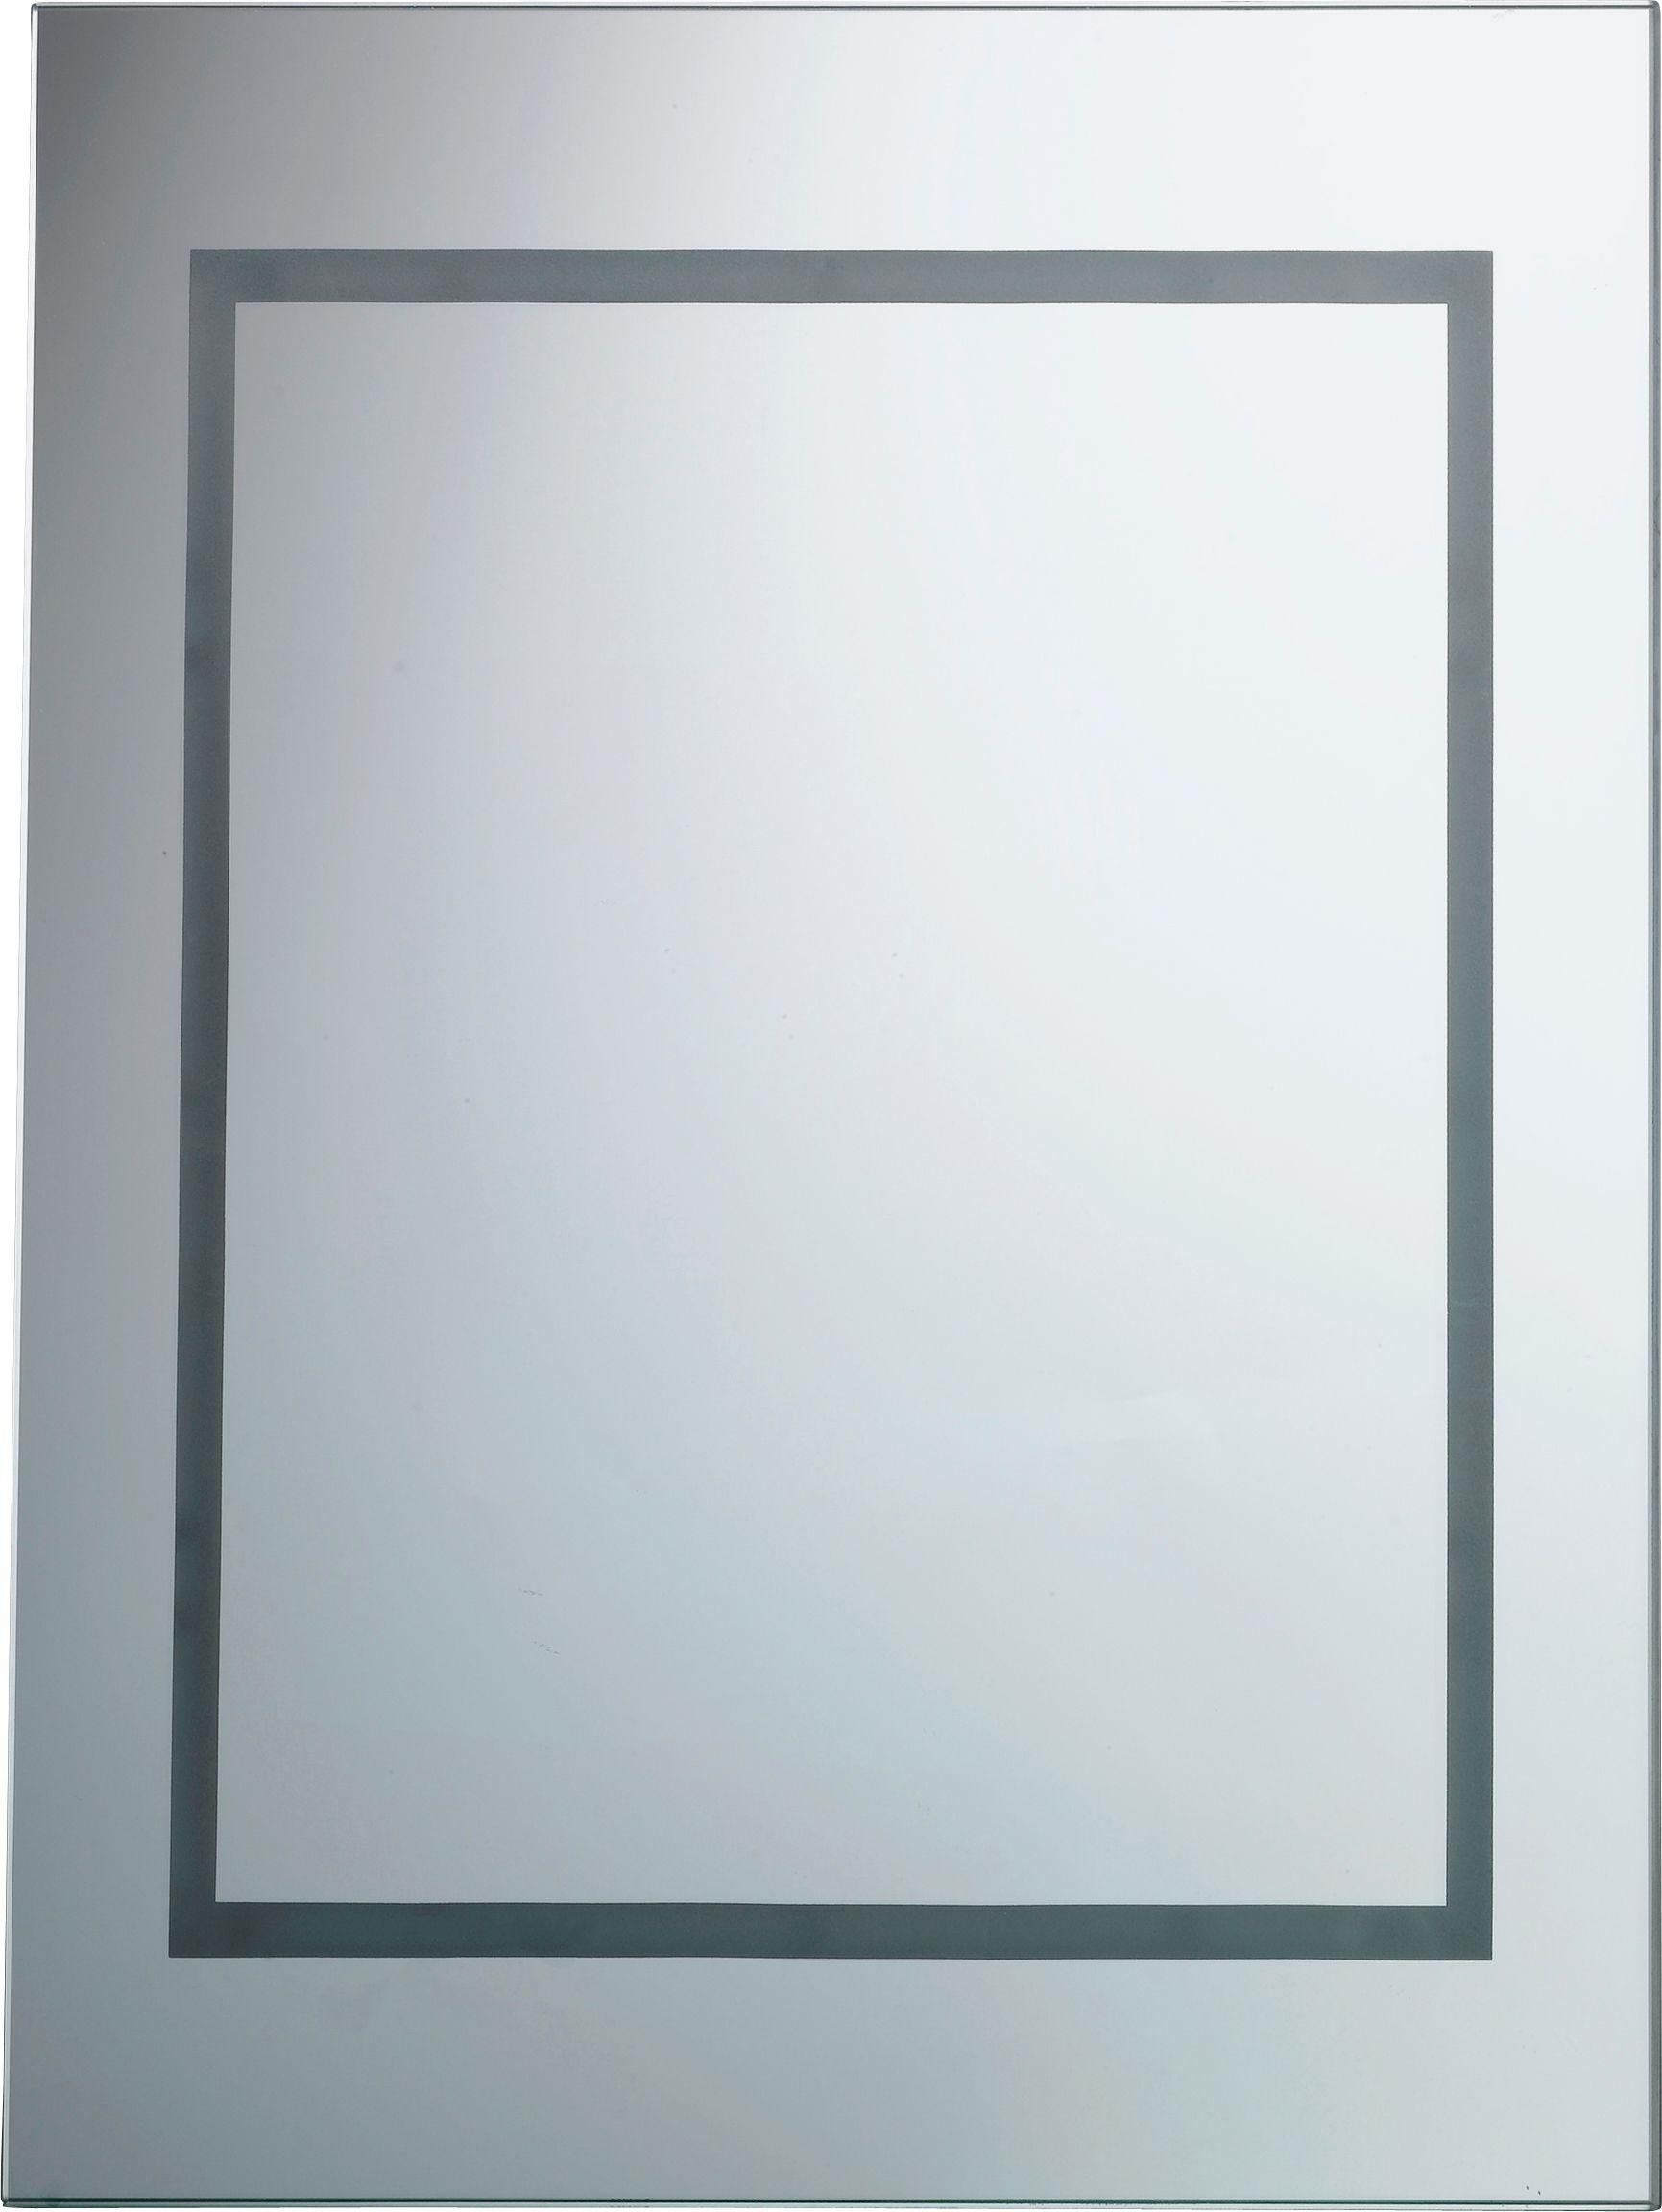 Bathroom Mirror Lights 900 X 600 buy home rectangular illuminated bathroom mirror - white gloss at